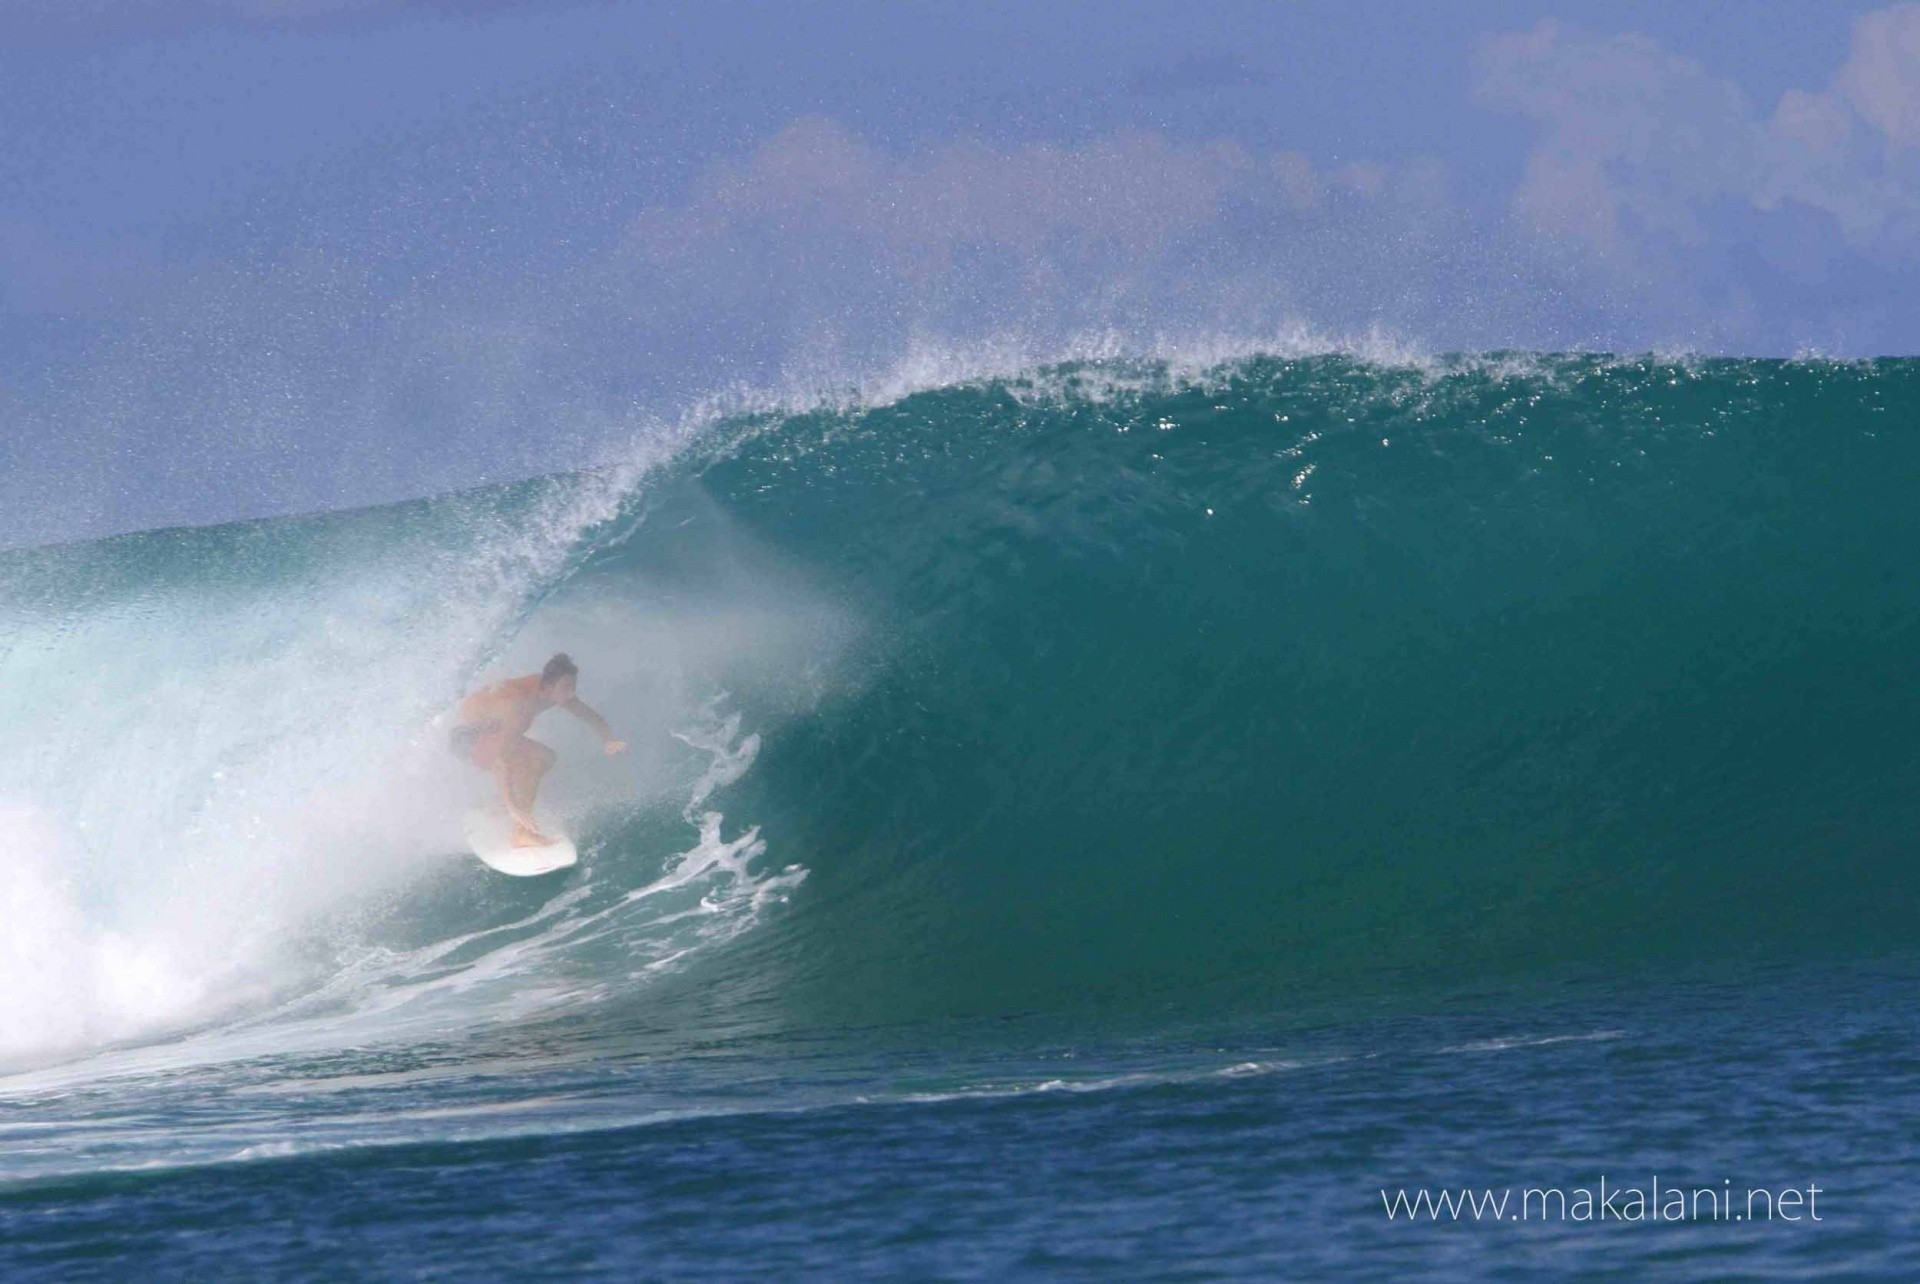 Makalani Productions's photo of Macaronis